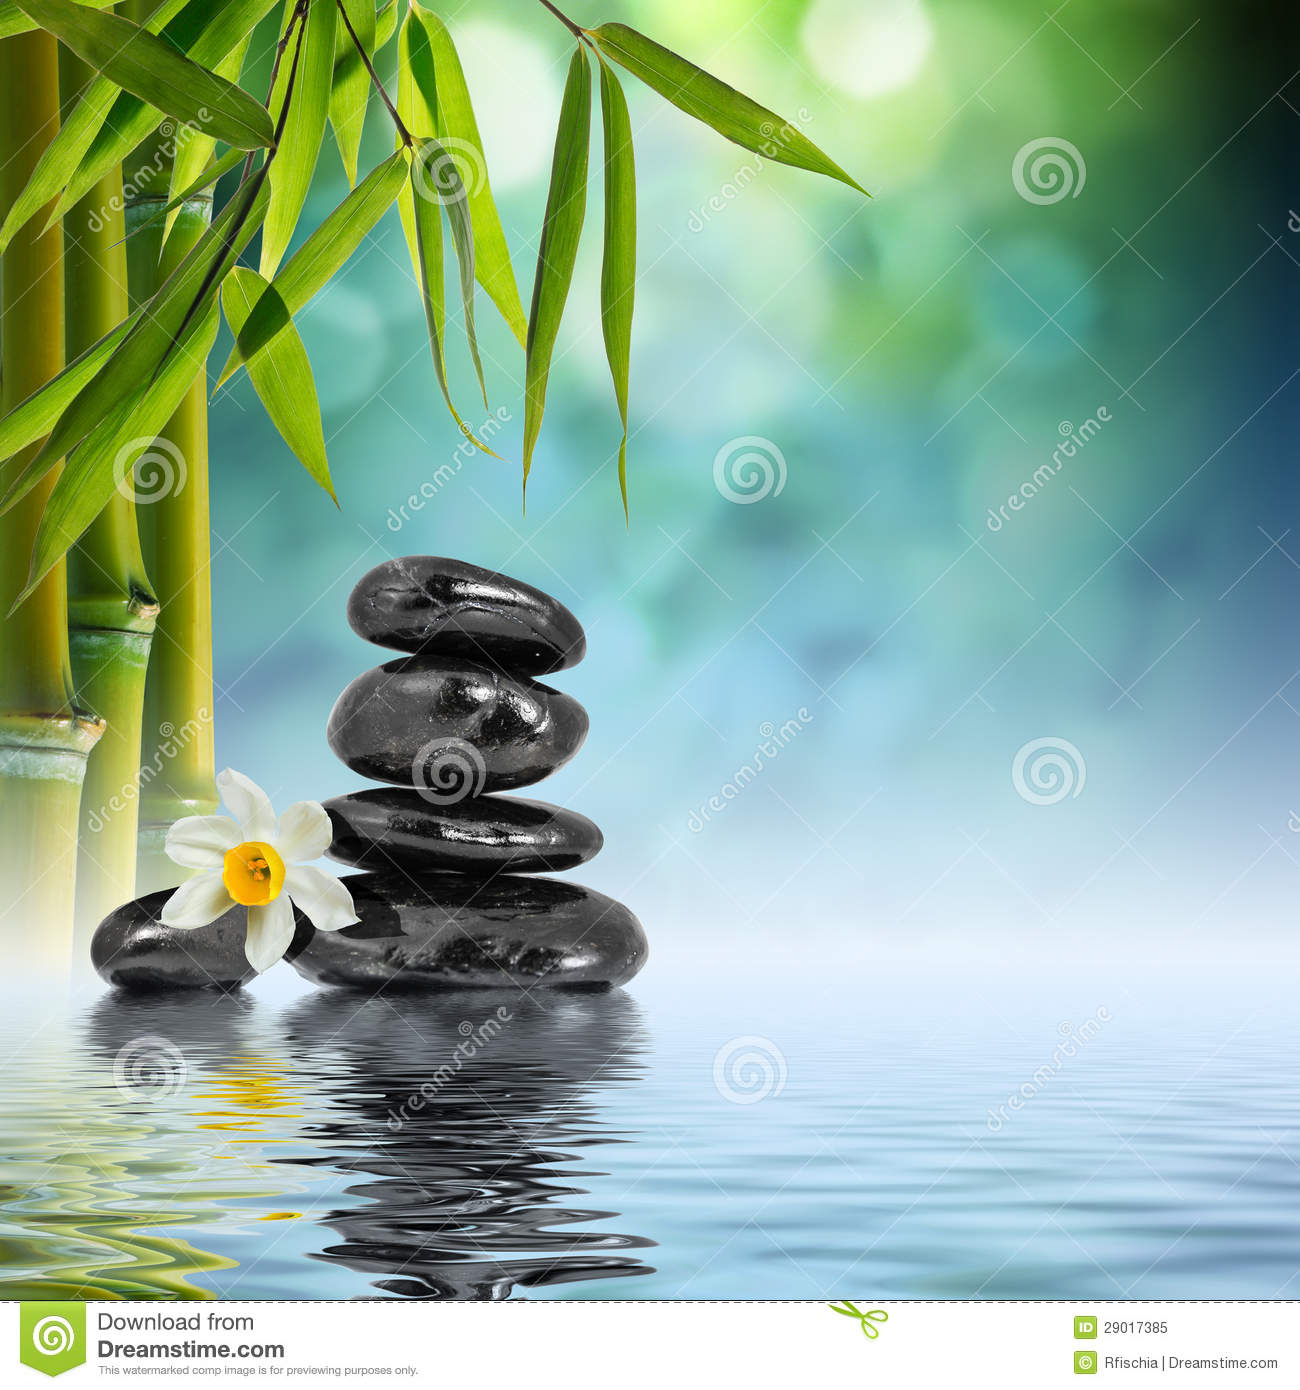 Stones and Bamboo on the water